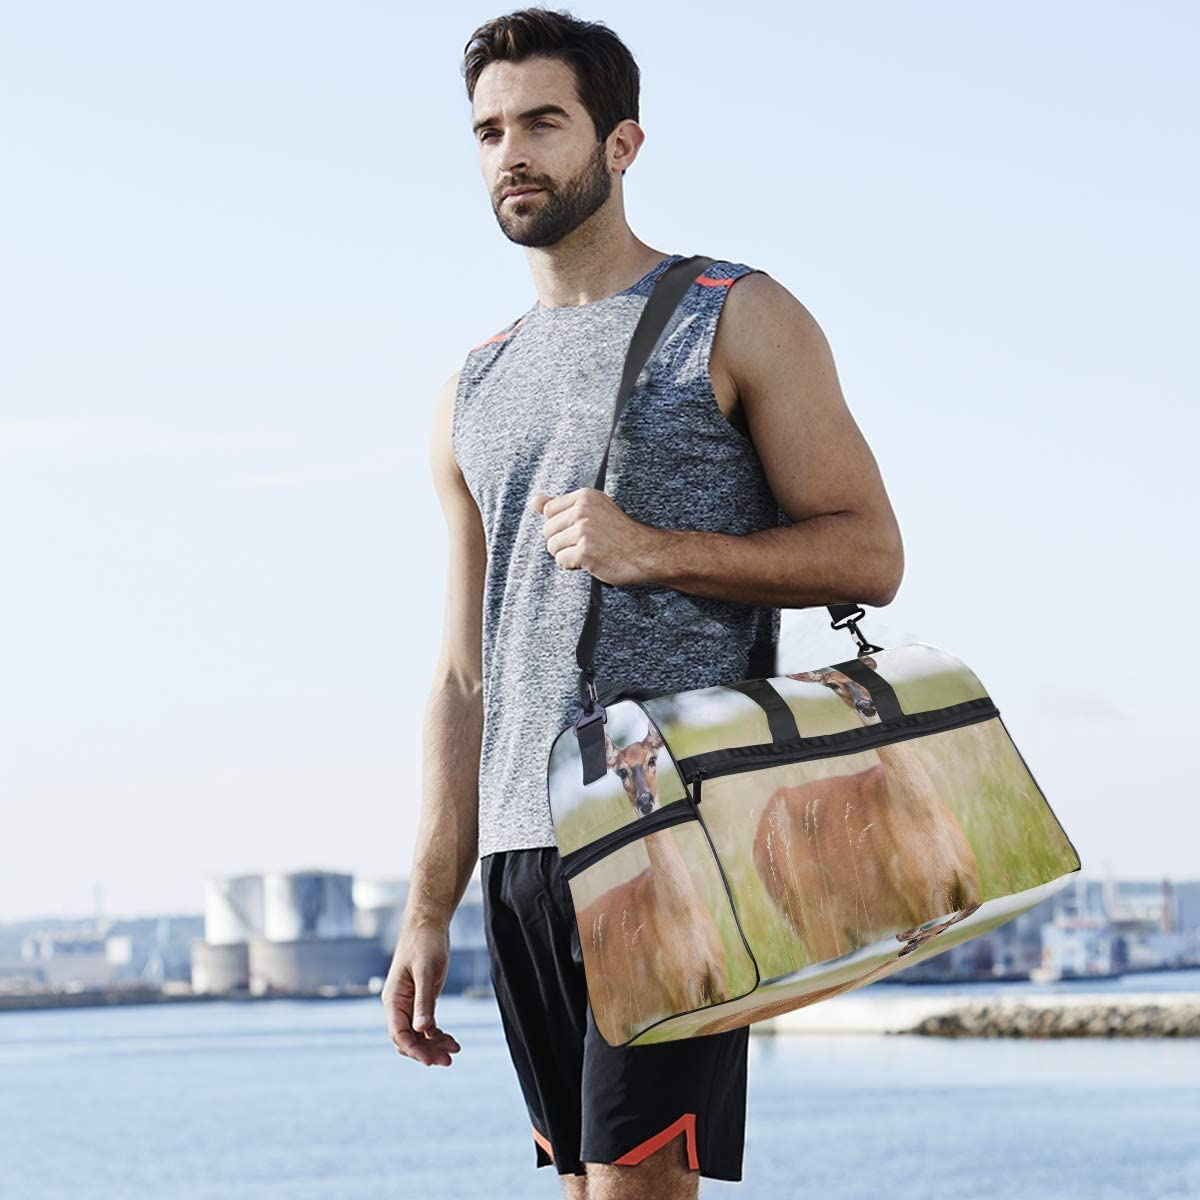 MUOOUM Funny Animal Roe Deer Large Duffle Bags Sports Gym Bag with Shoes Compartment for Men and Women